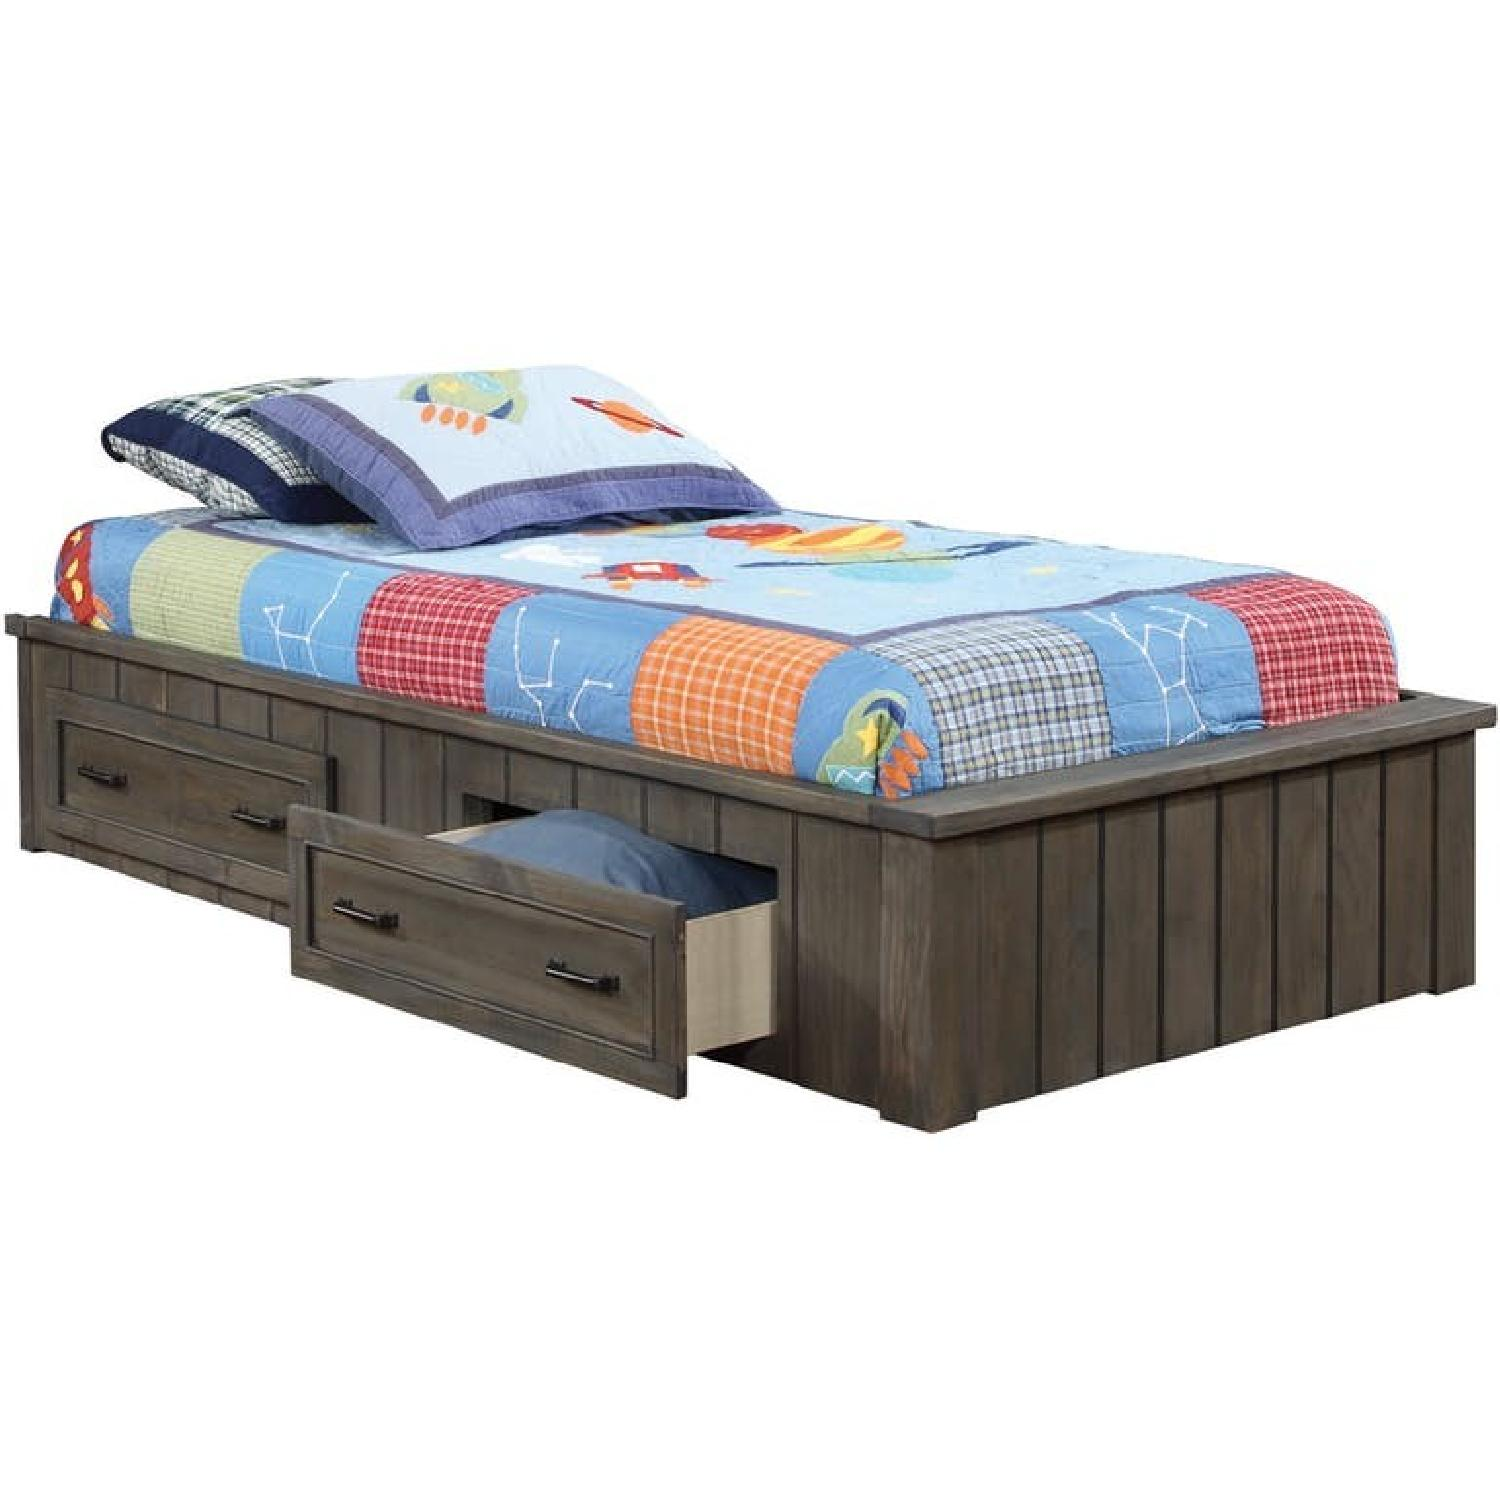 Twin Size Captain's Bed w/ 2 Storage Drawers